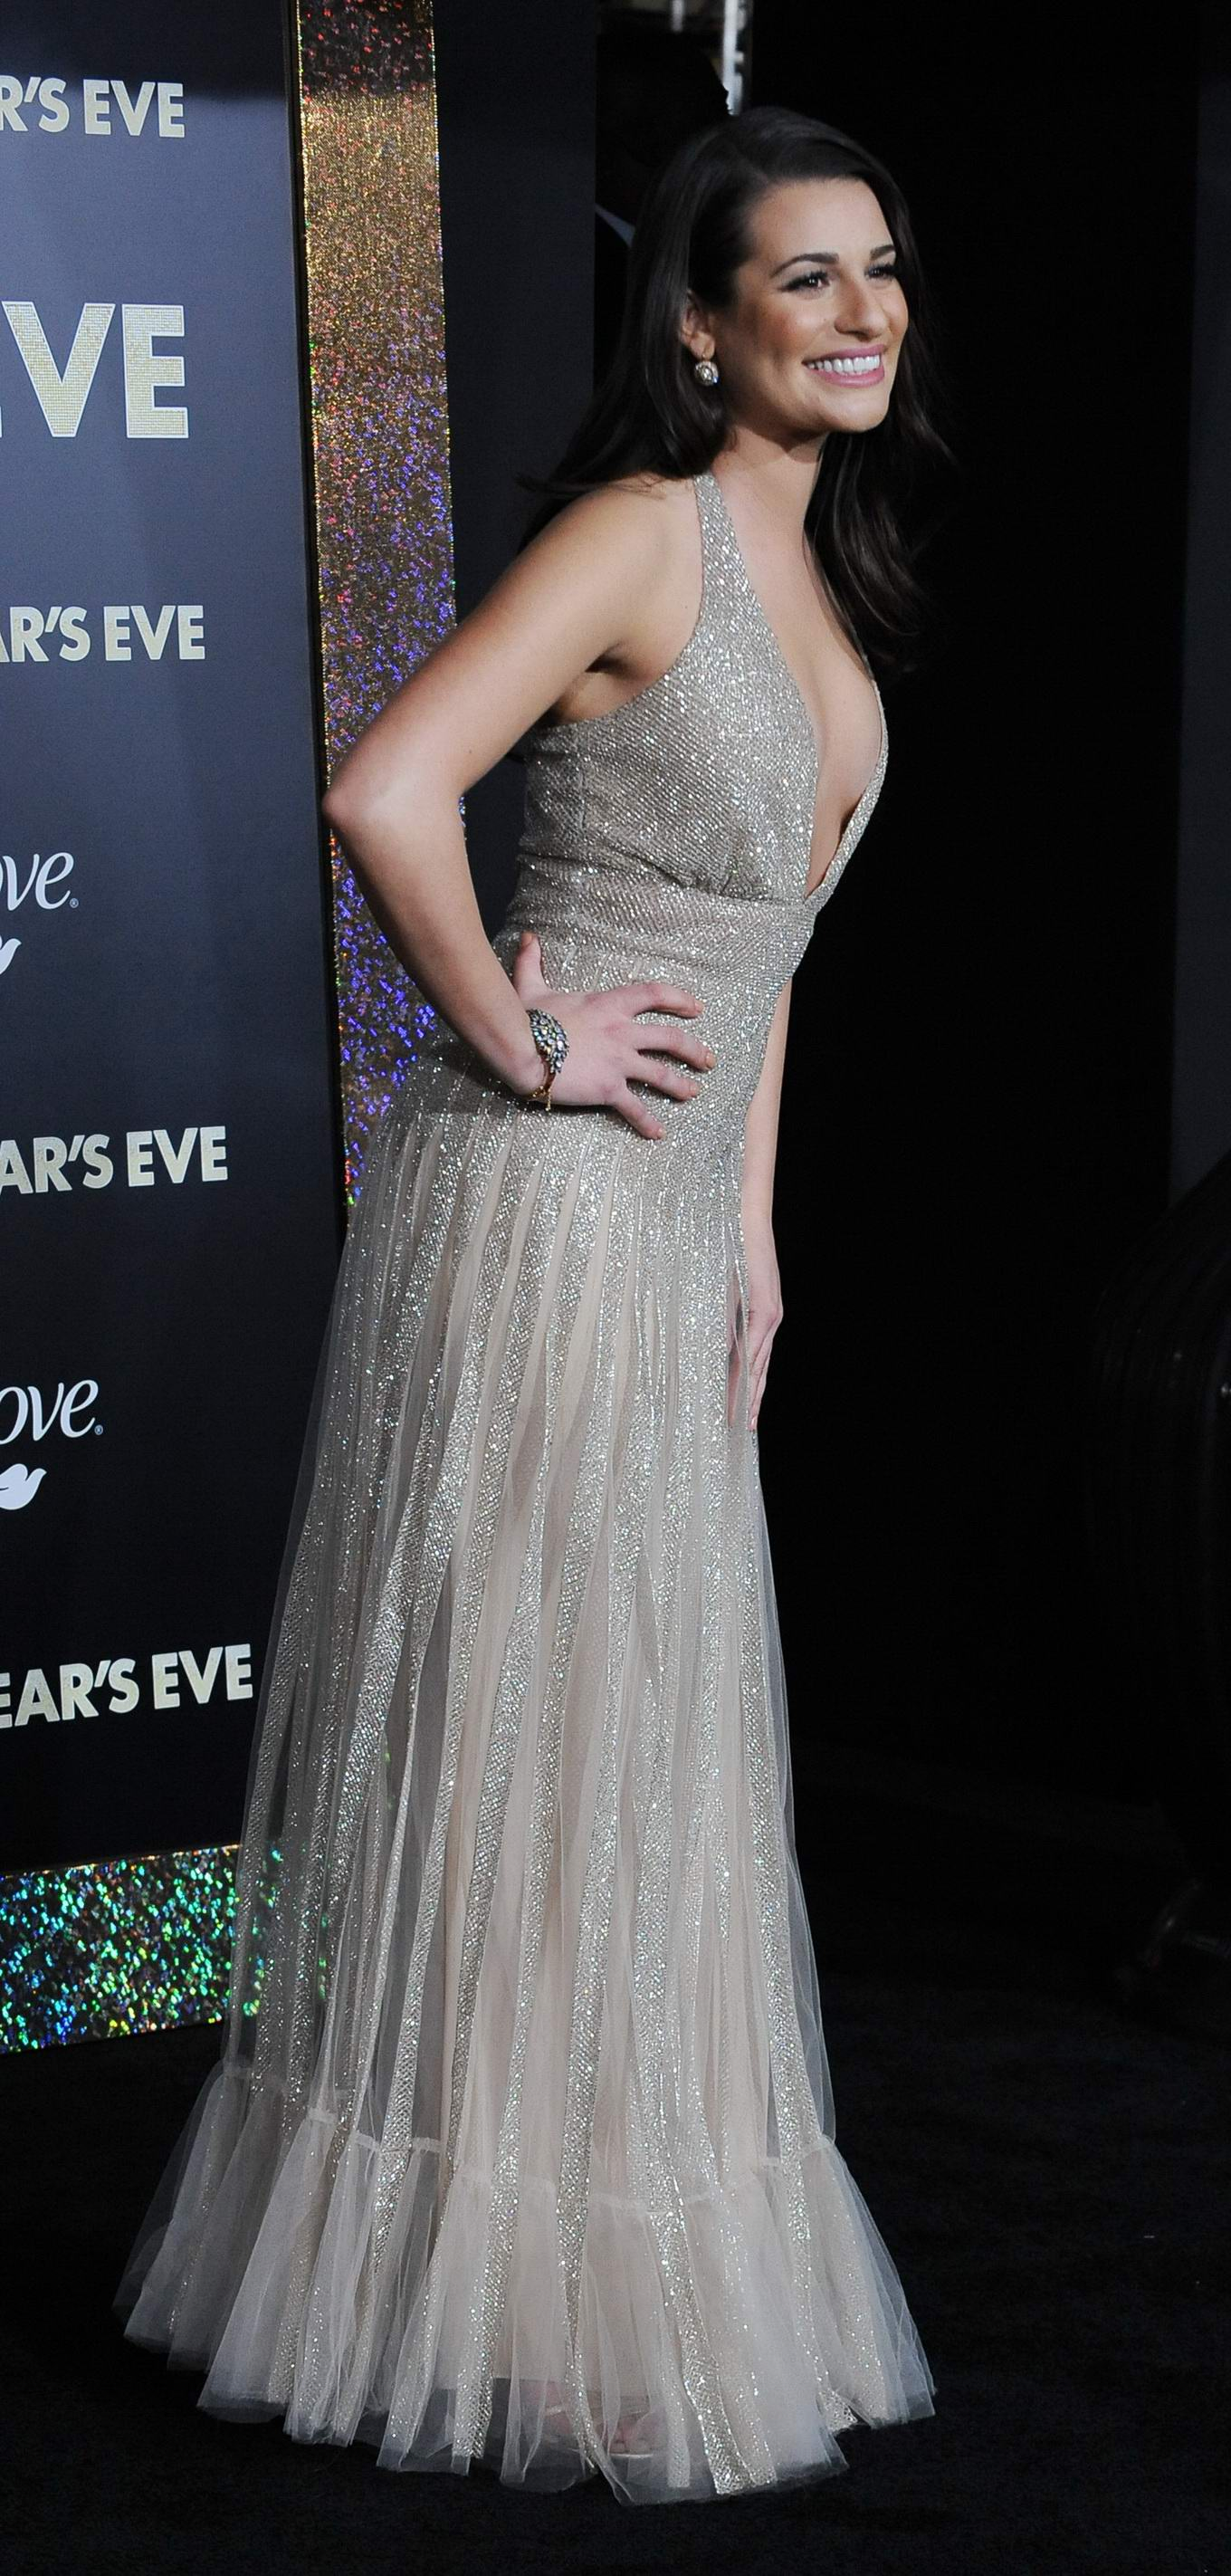 Lea Michele braless showing side boob at the 'New Year's Eve' premiere in LA